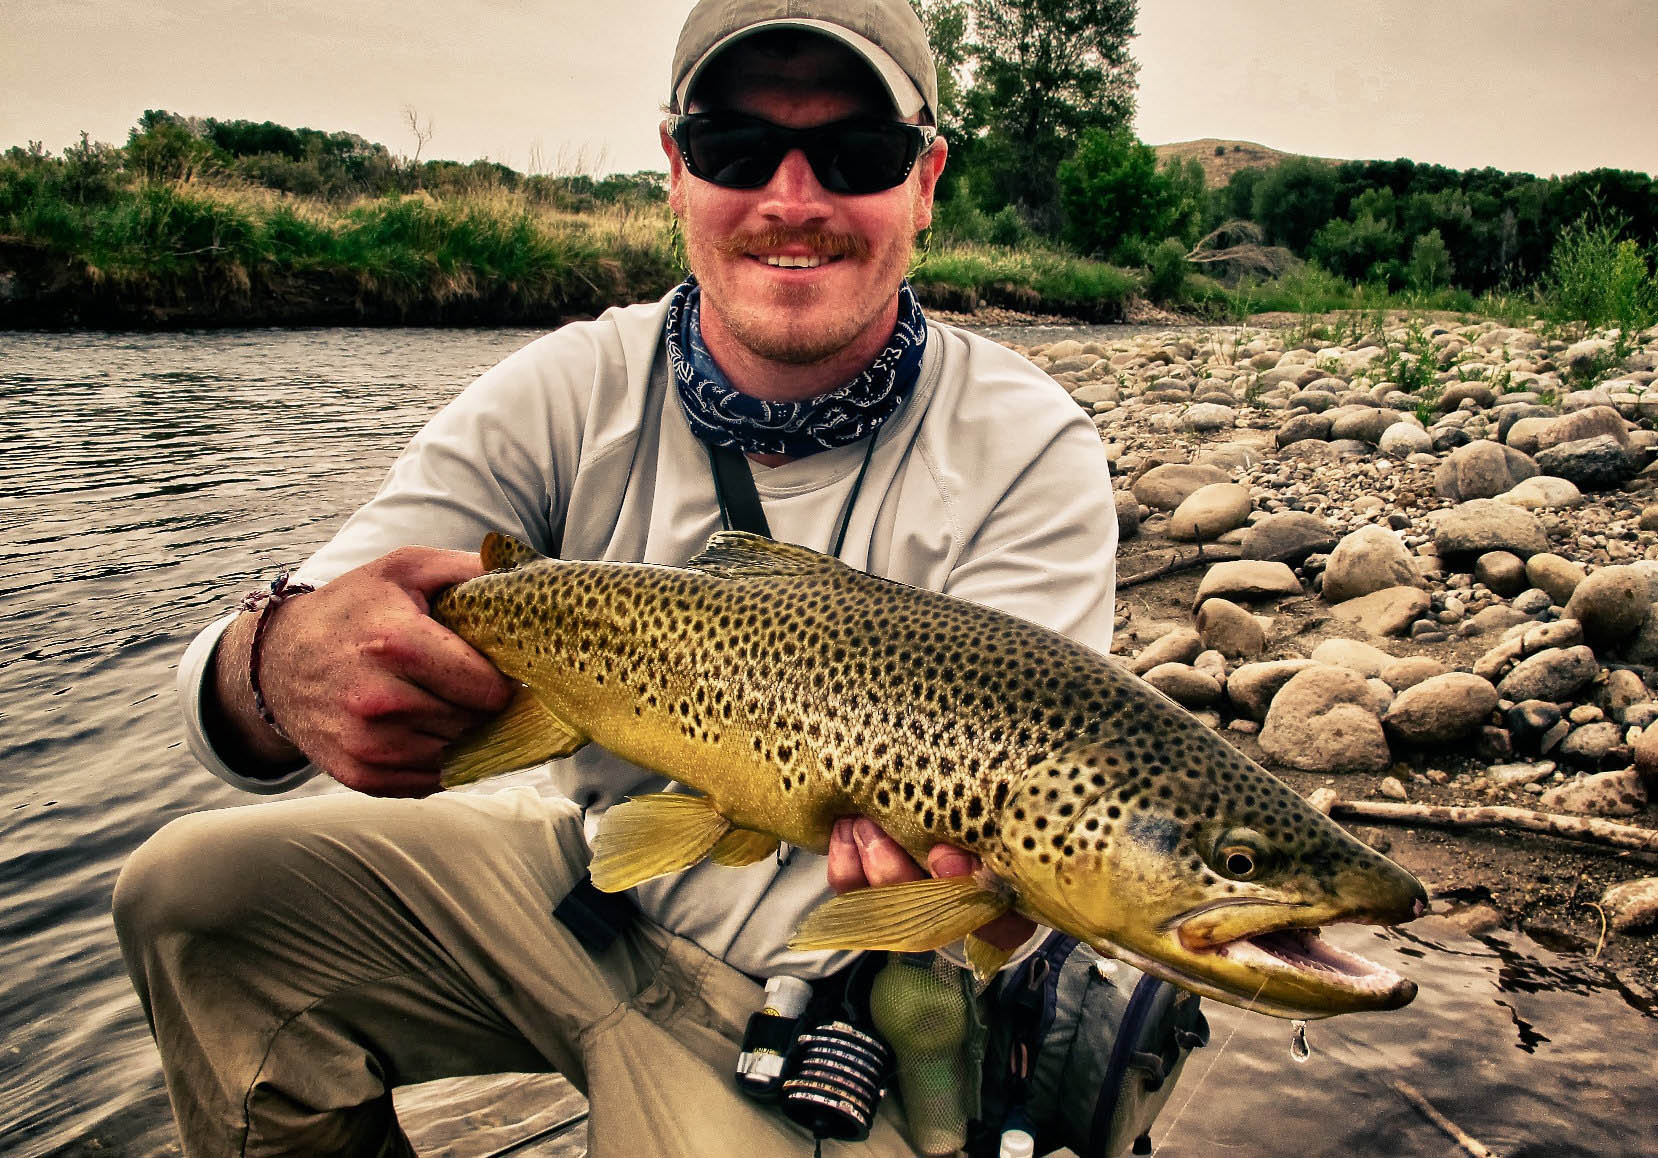 Private Water Fly Fishing Wyoming Montana Brown Trout Rainbow Trout Cutthroat Trout